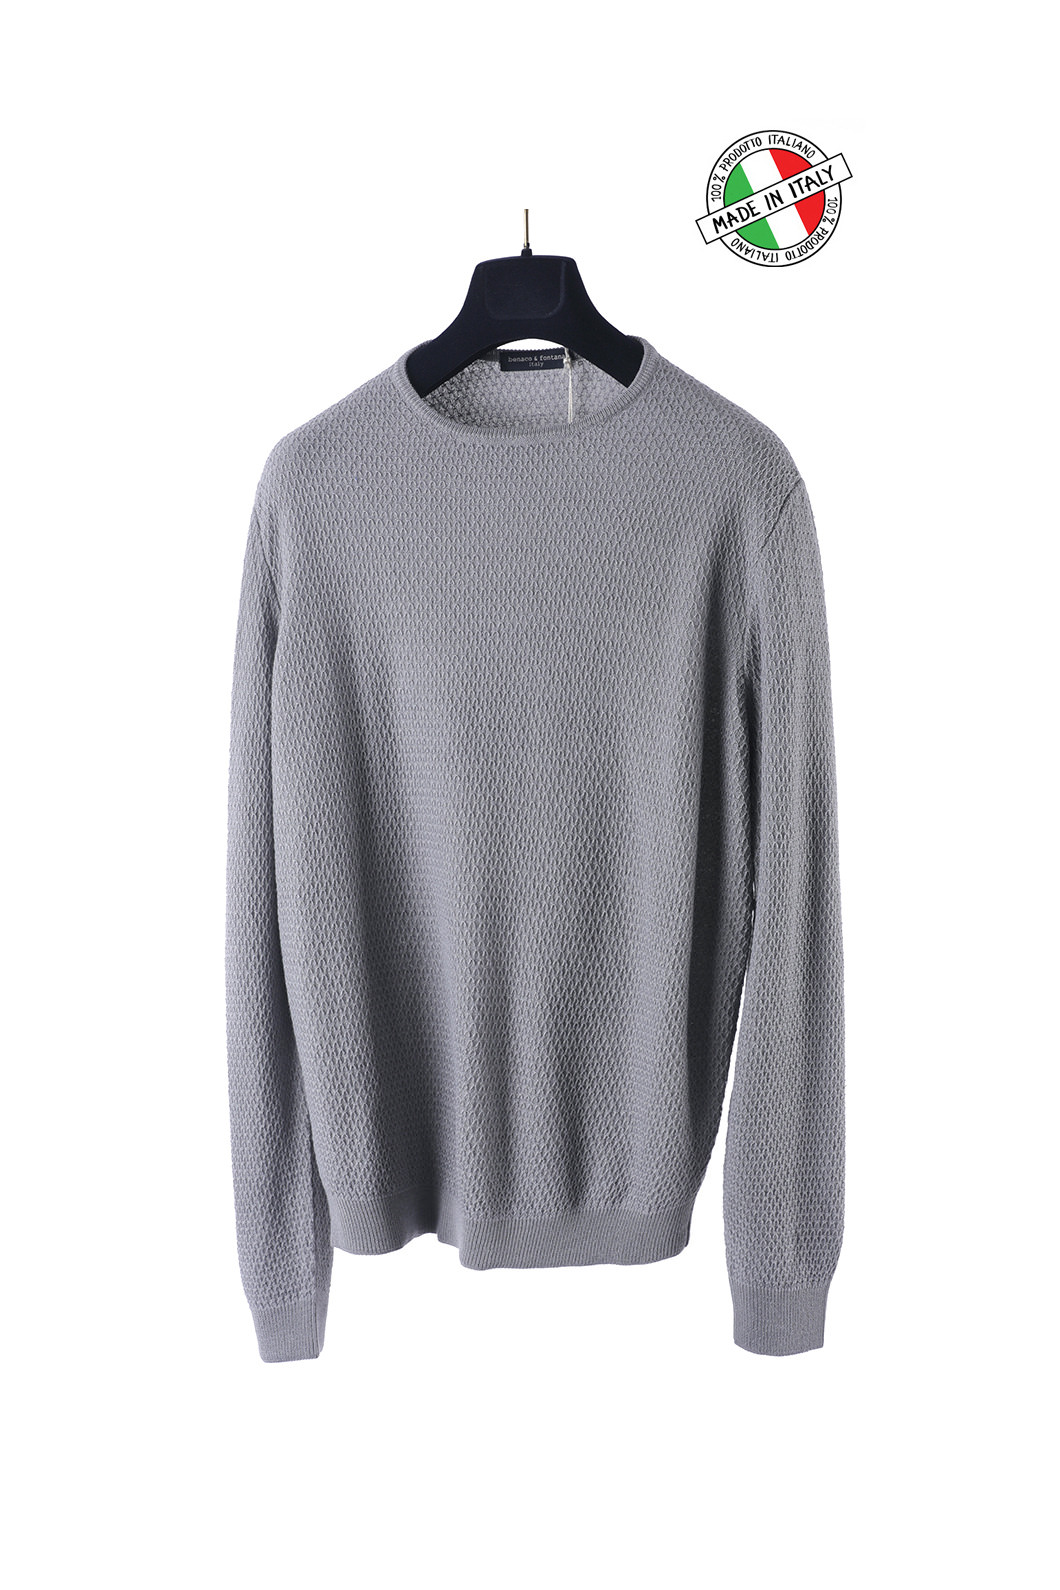 BENACO Honeycomb Knit-Light Gray